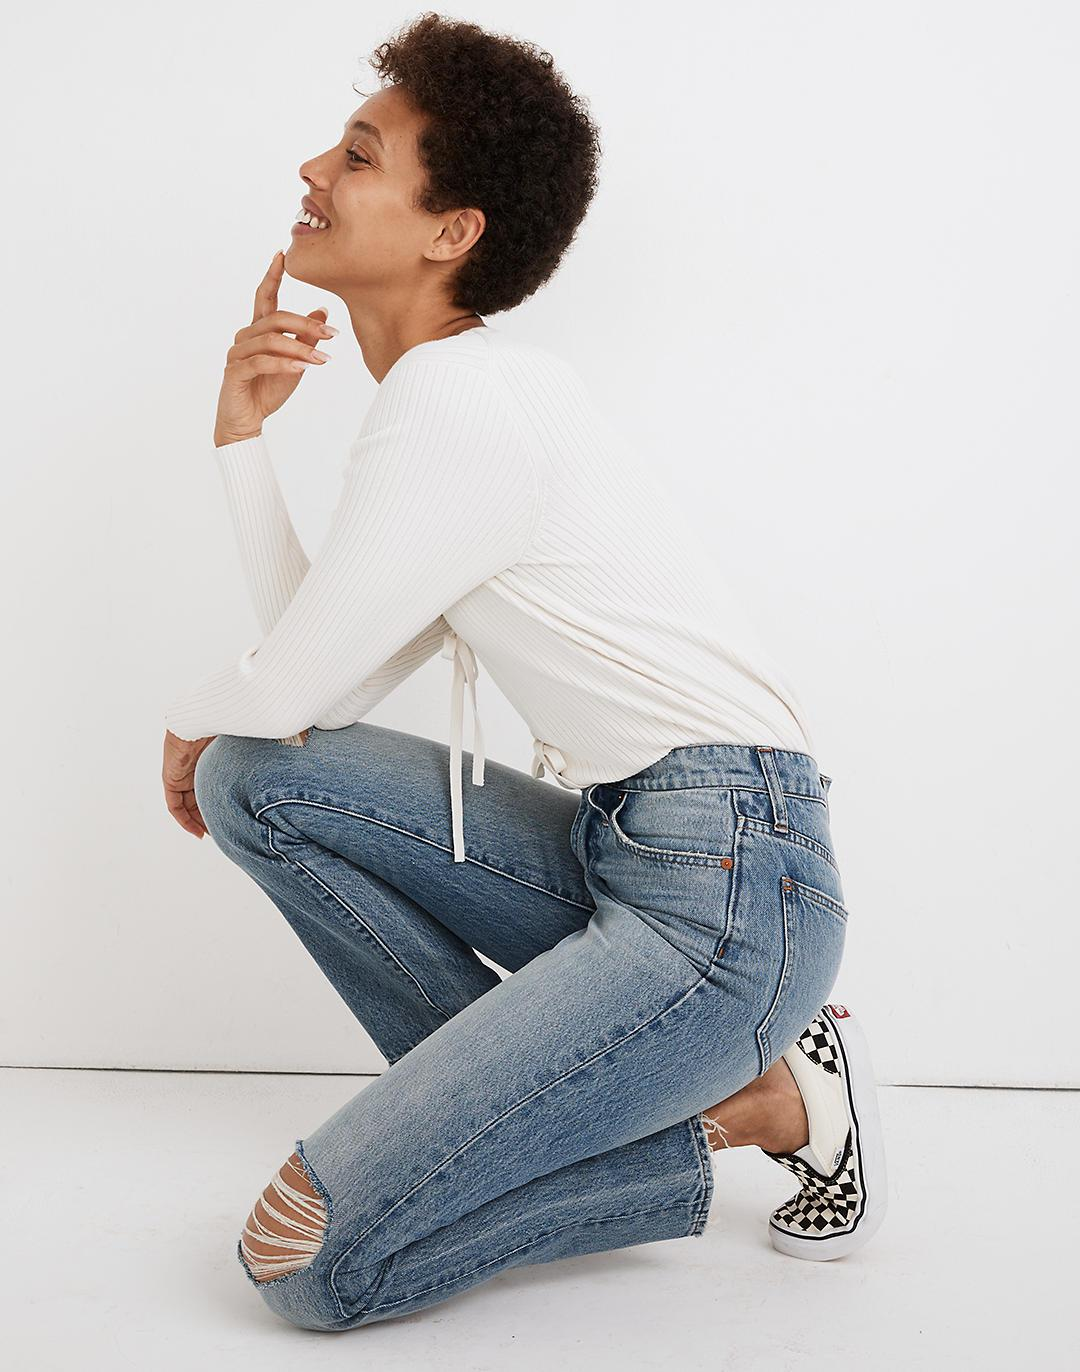 The Perfect Vintage Jean in Phillips Wash: Knee-Rips Edition 1